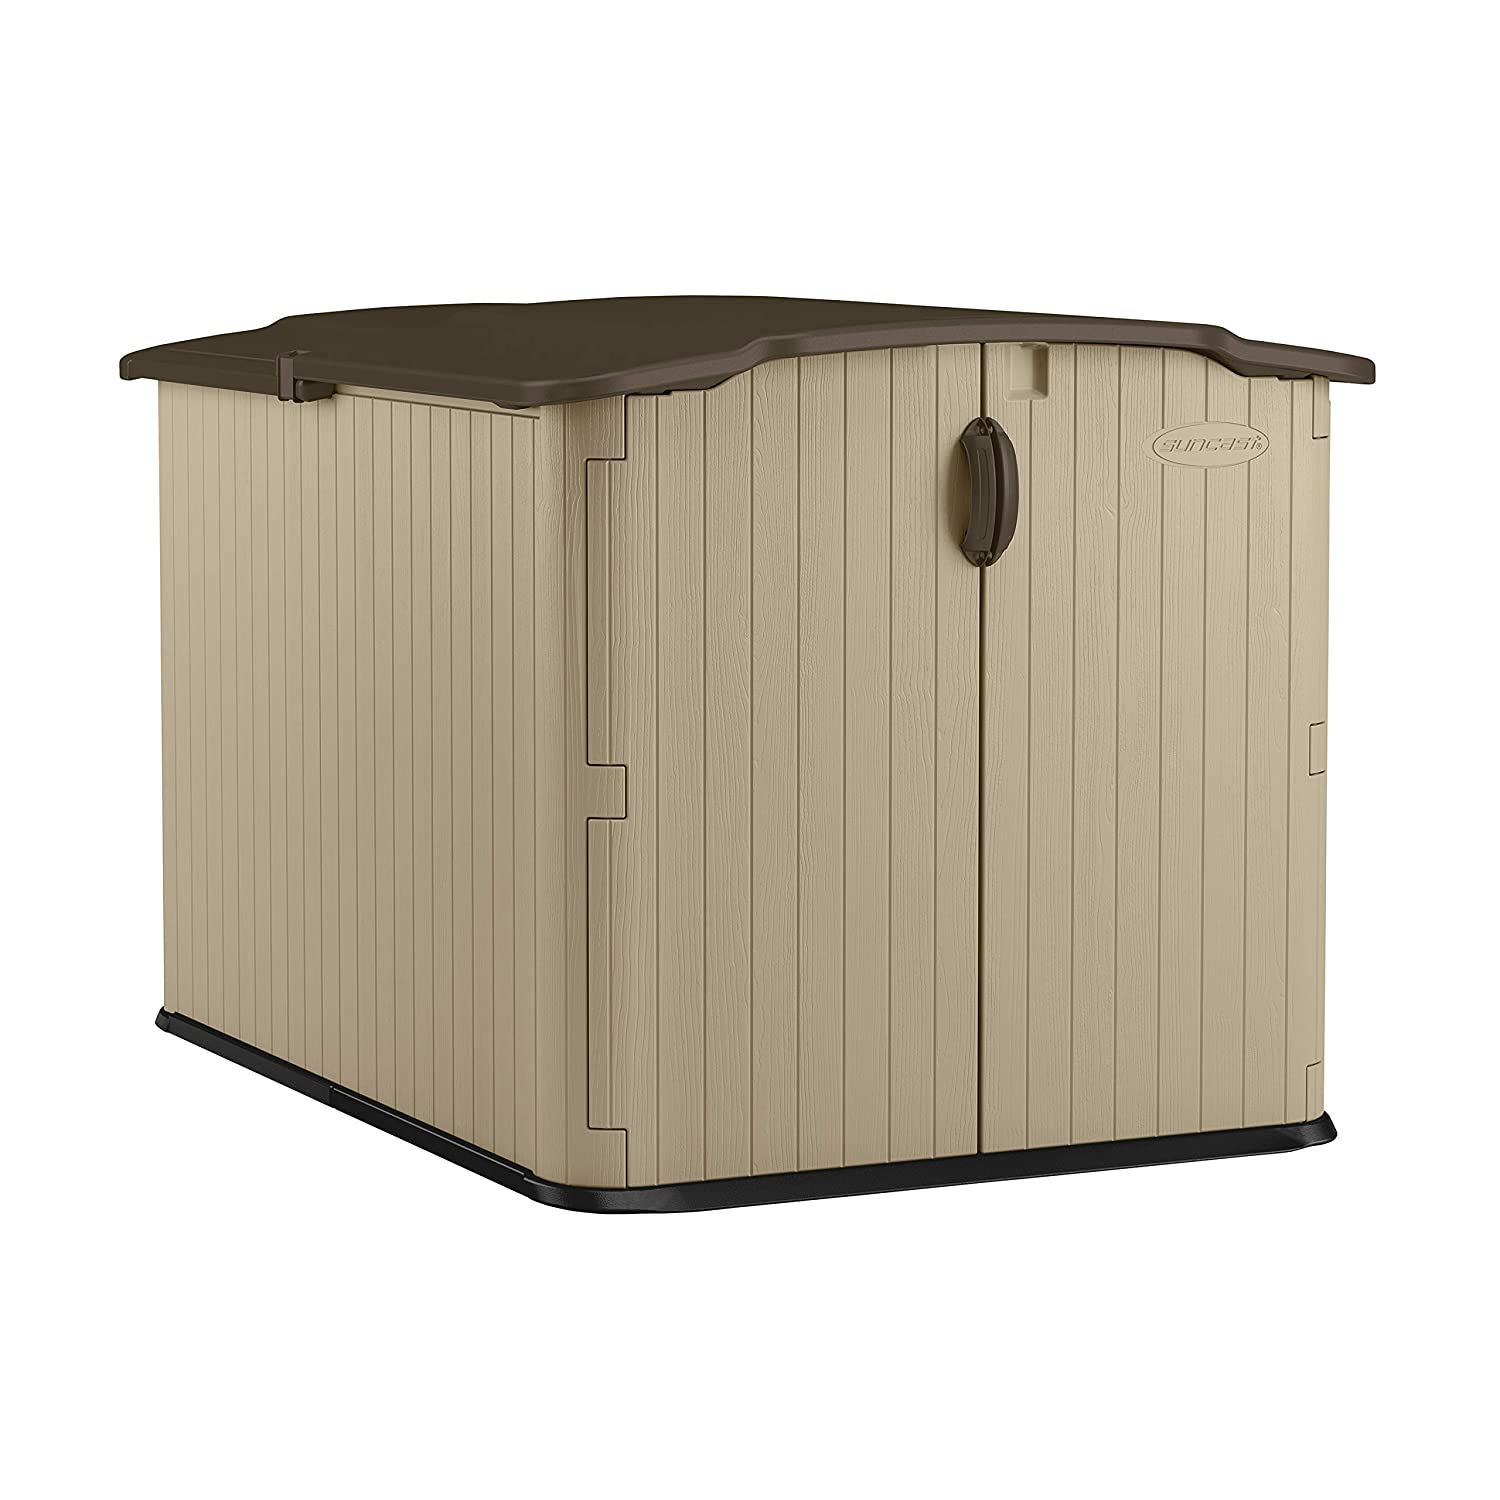 B006G66YSY Suncast 6' x 4' Glidetop Horizontal Storage Shed - Natural Wood-like Outdoor Storage for Trash Cans and Yard Tools - All-Weather Resin Material, Slide Lid Design and Reinforced Floor - Brown 81aXqYtqMHL._SL1500_